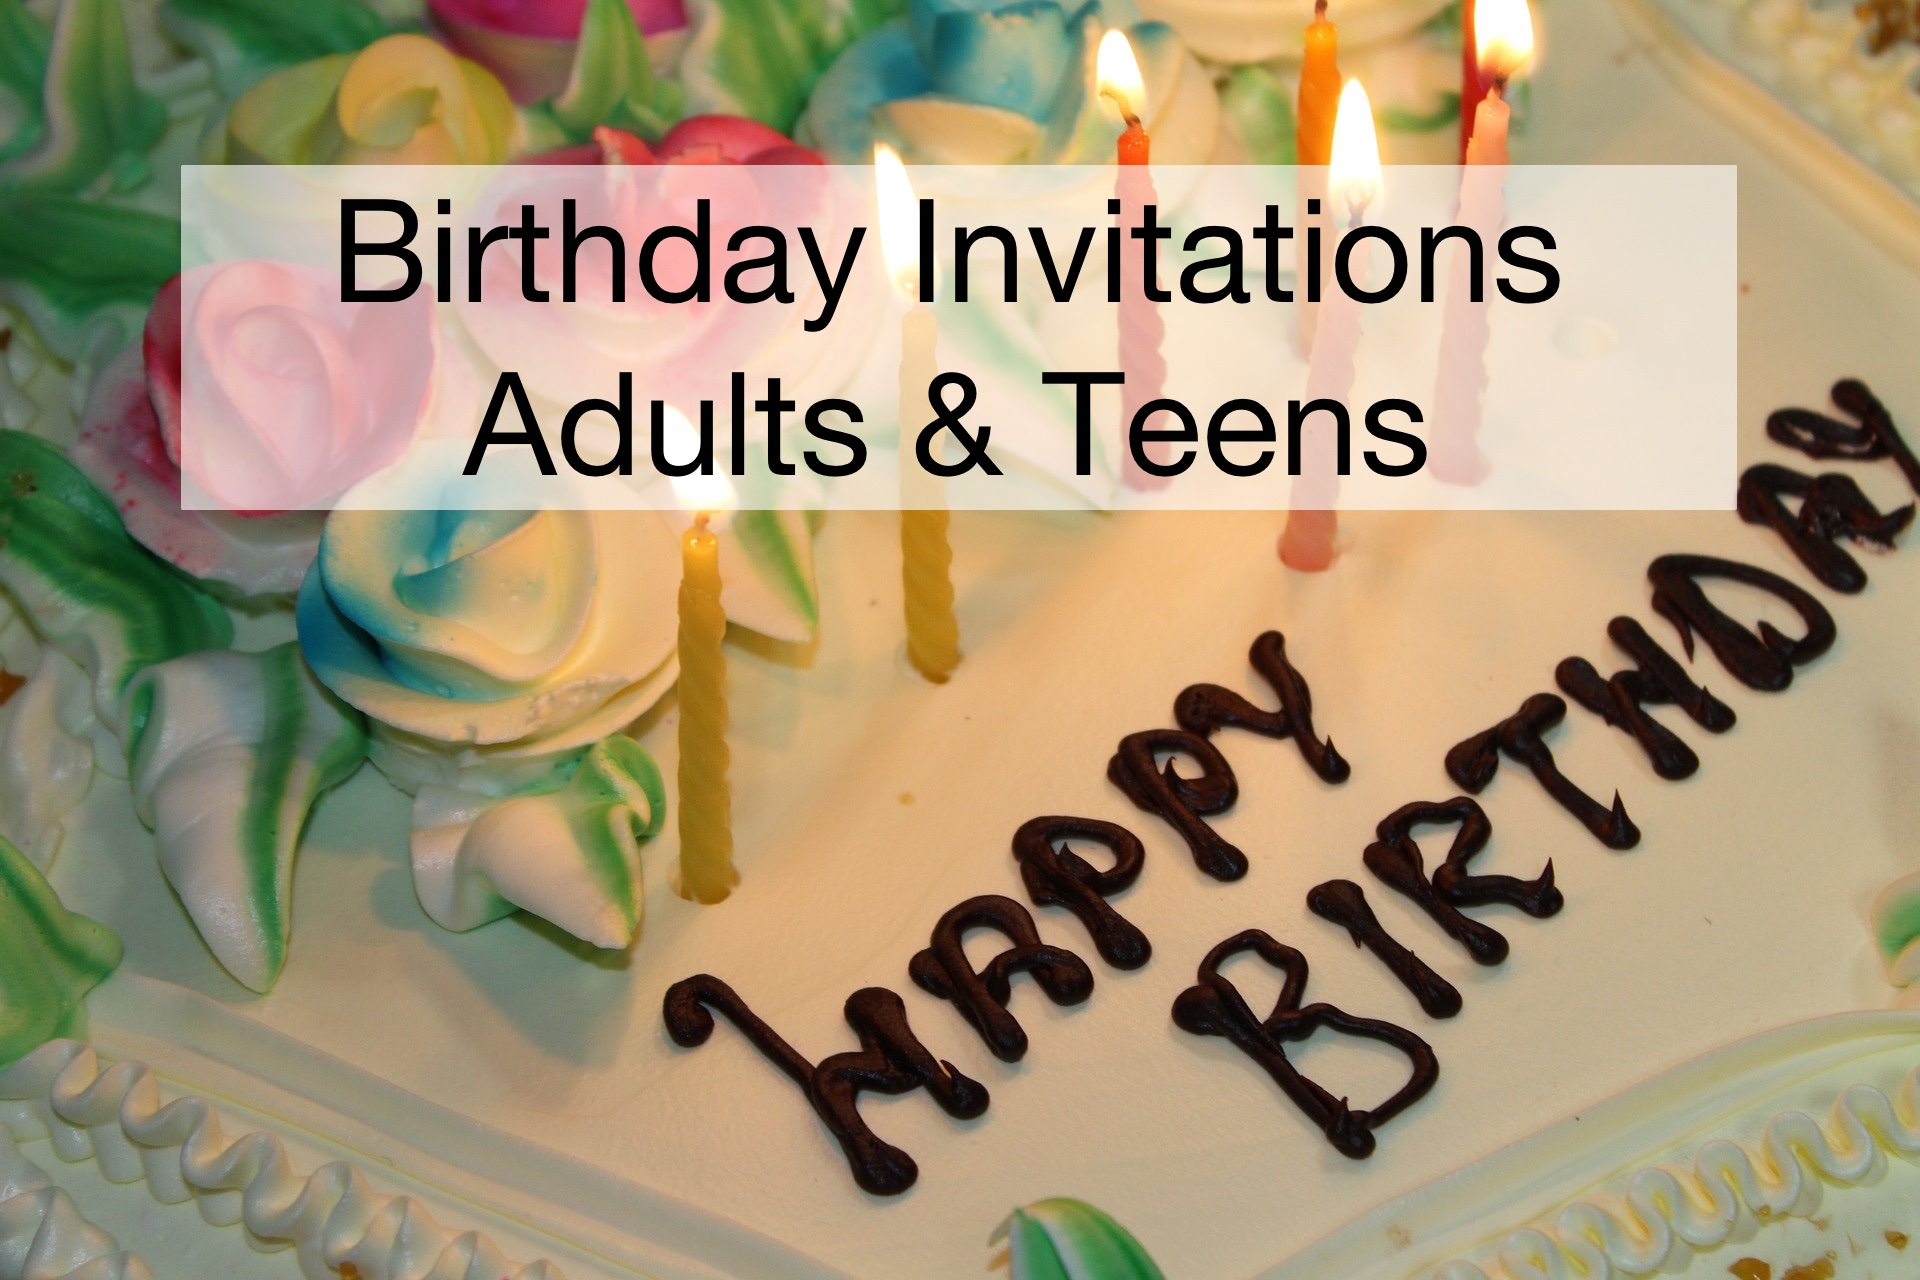 birthday party invitations for adults and teens